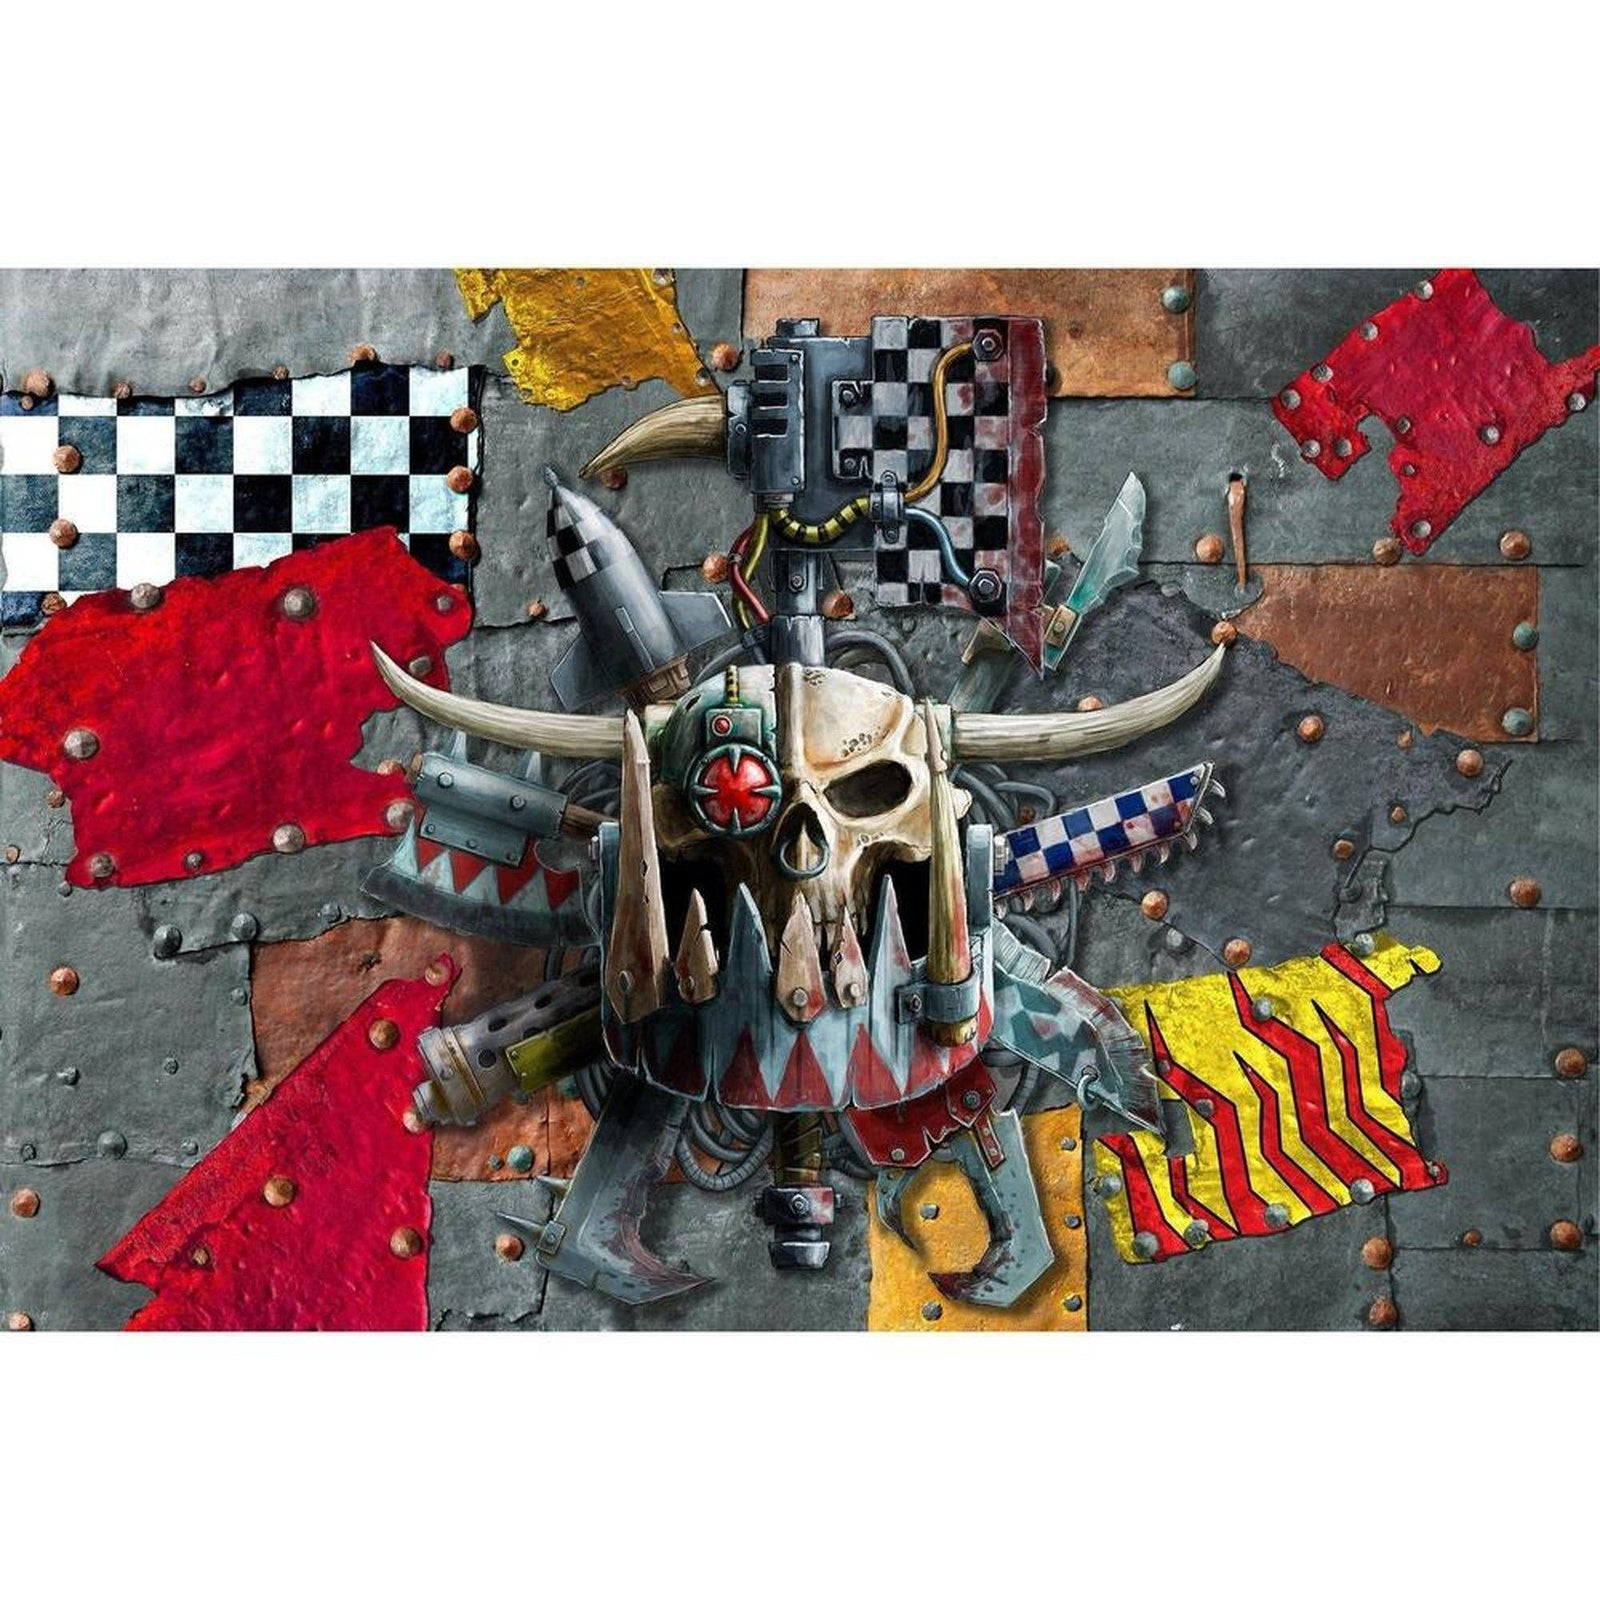 Warhammer Special Edition - Digitally Printed Play Mats - Table of Ultimate Gaming